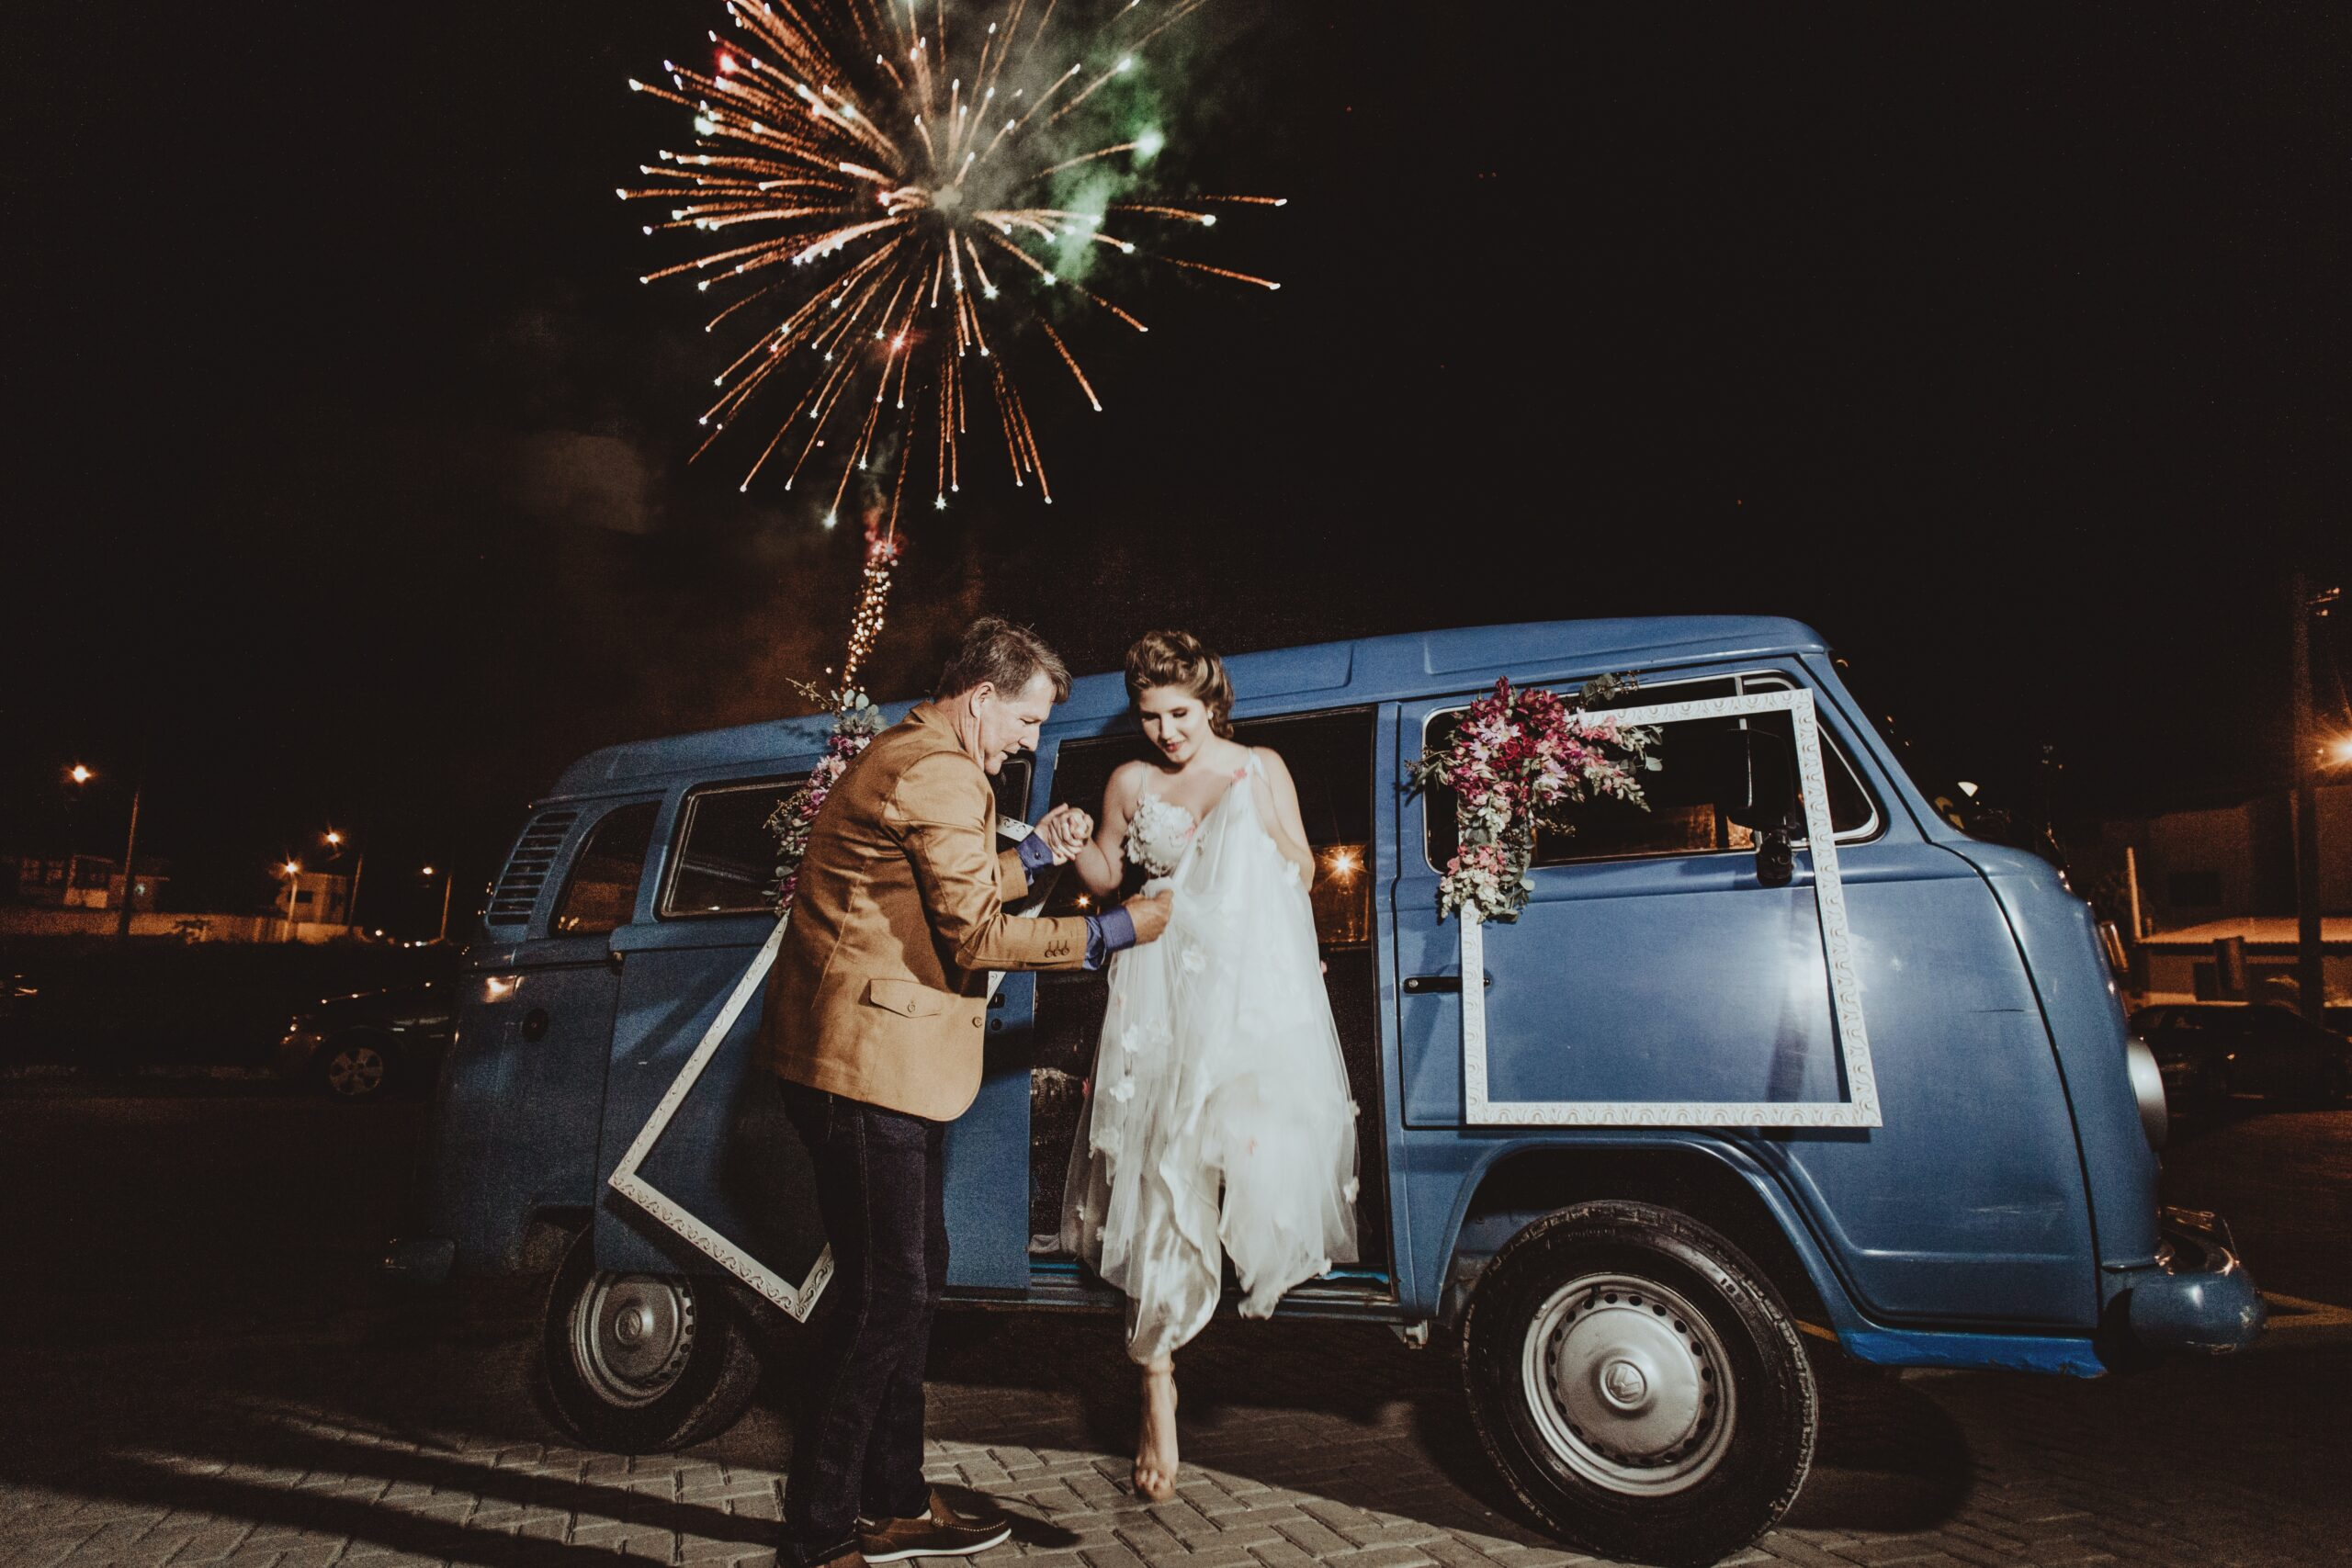 woman getting out of the blue van while holding a man during night time